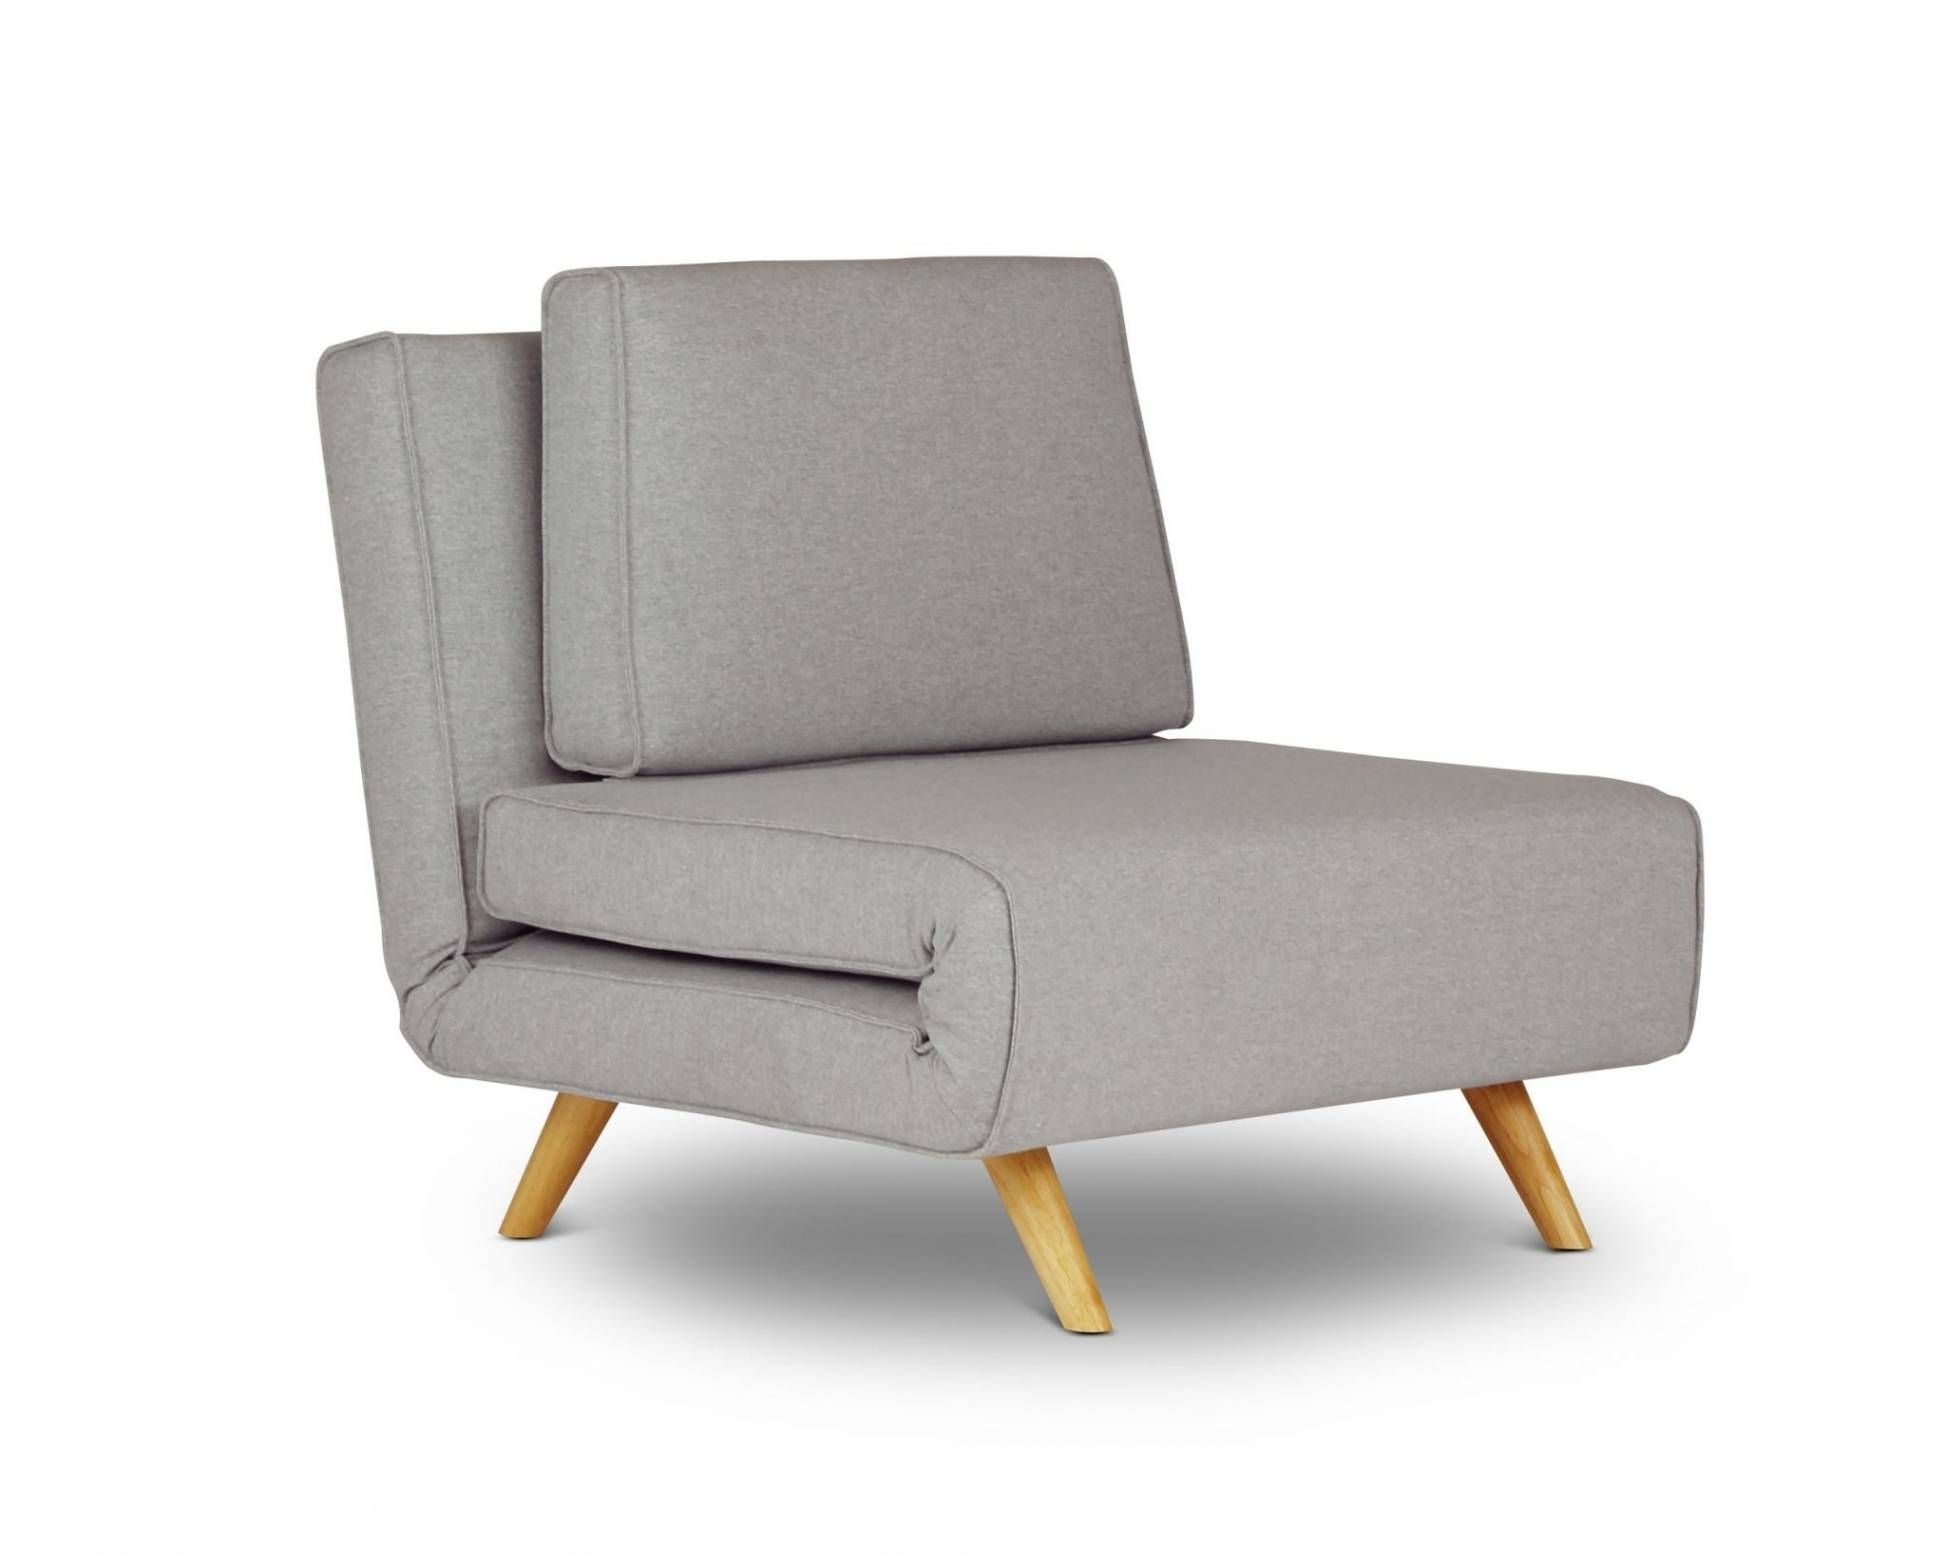 Unique Single Sofa Bed Chair | Sofa Ideas for Single Sofa Beds (Image 24 of 30)